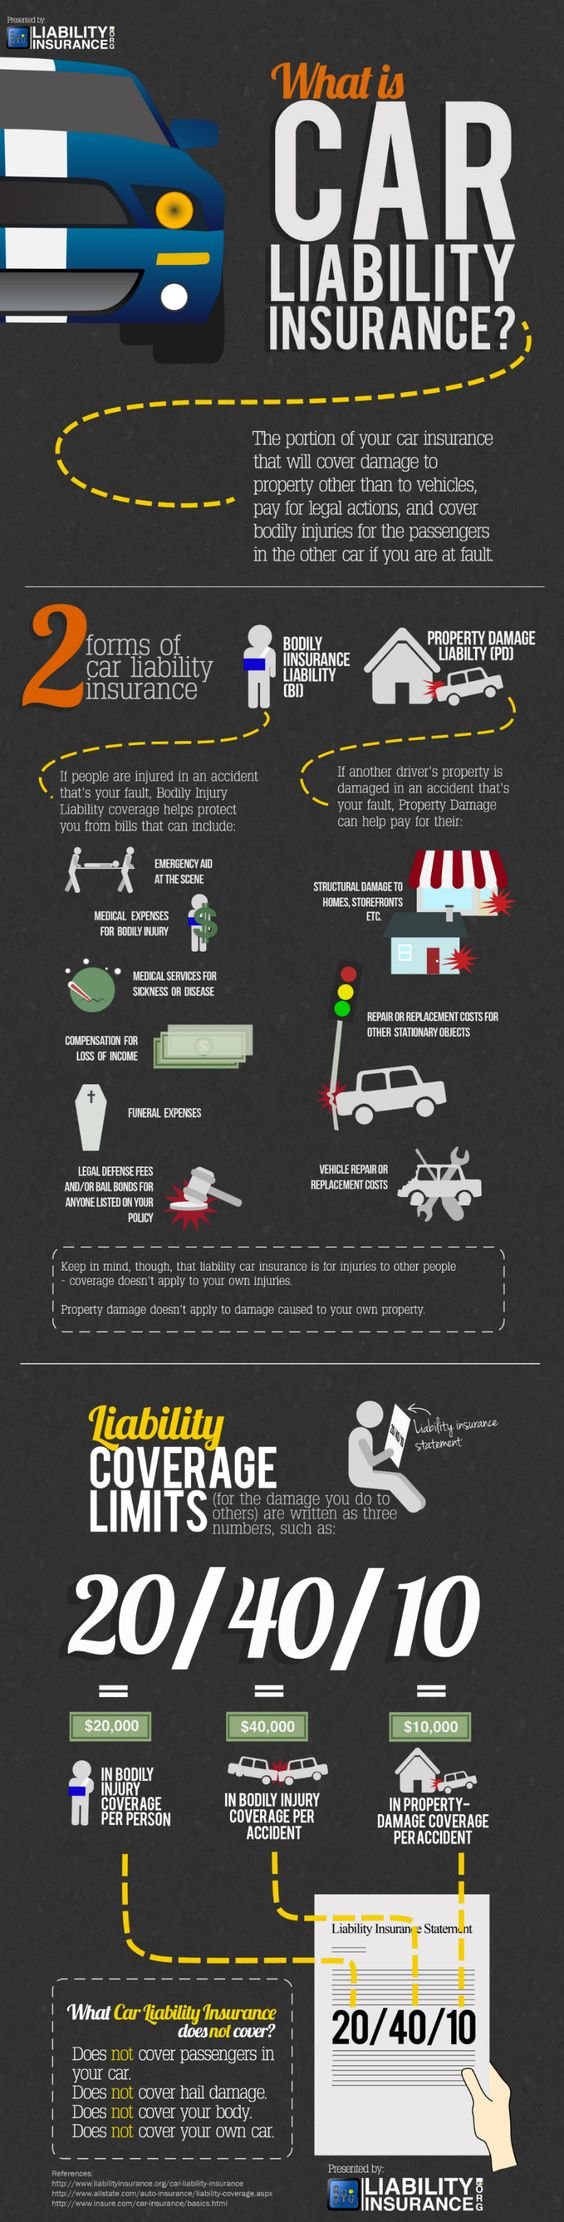 Check out insurance liability coverage on your policy. Infographic courtesy of